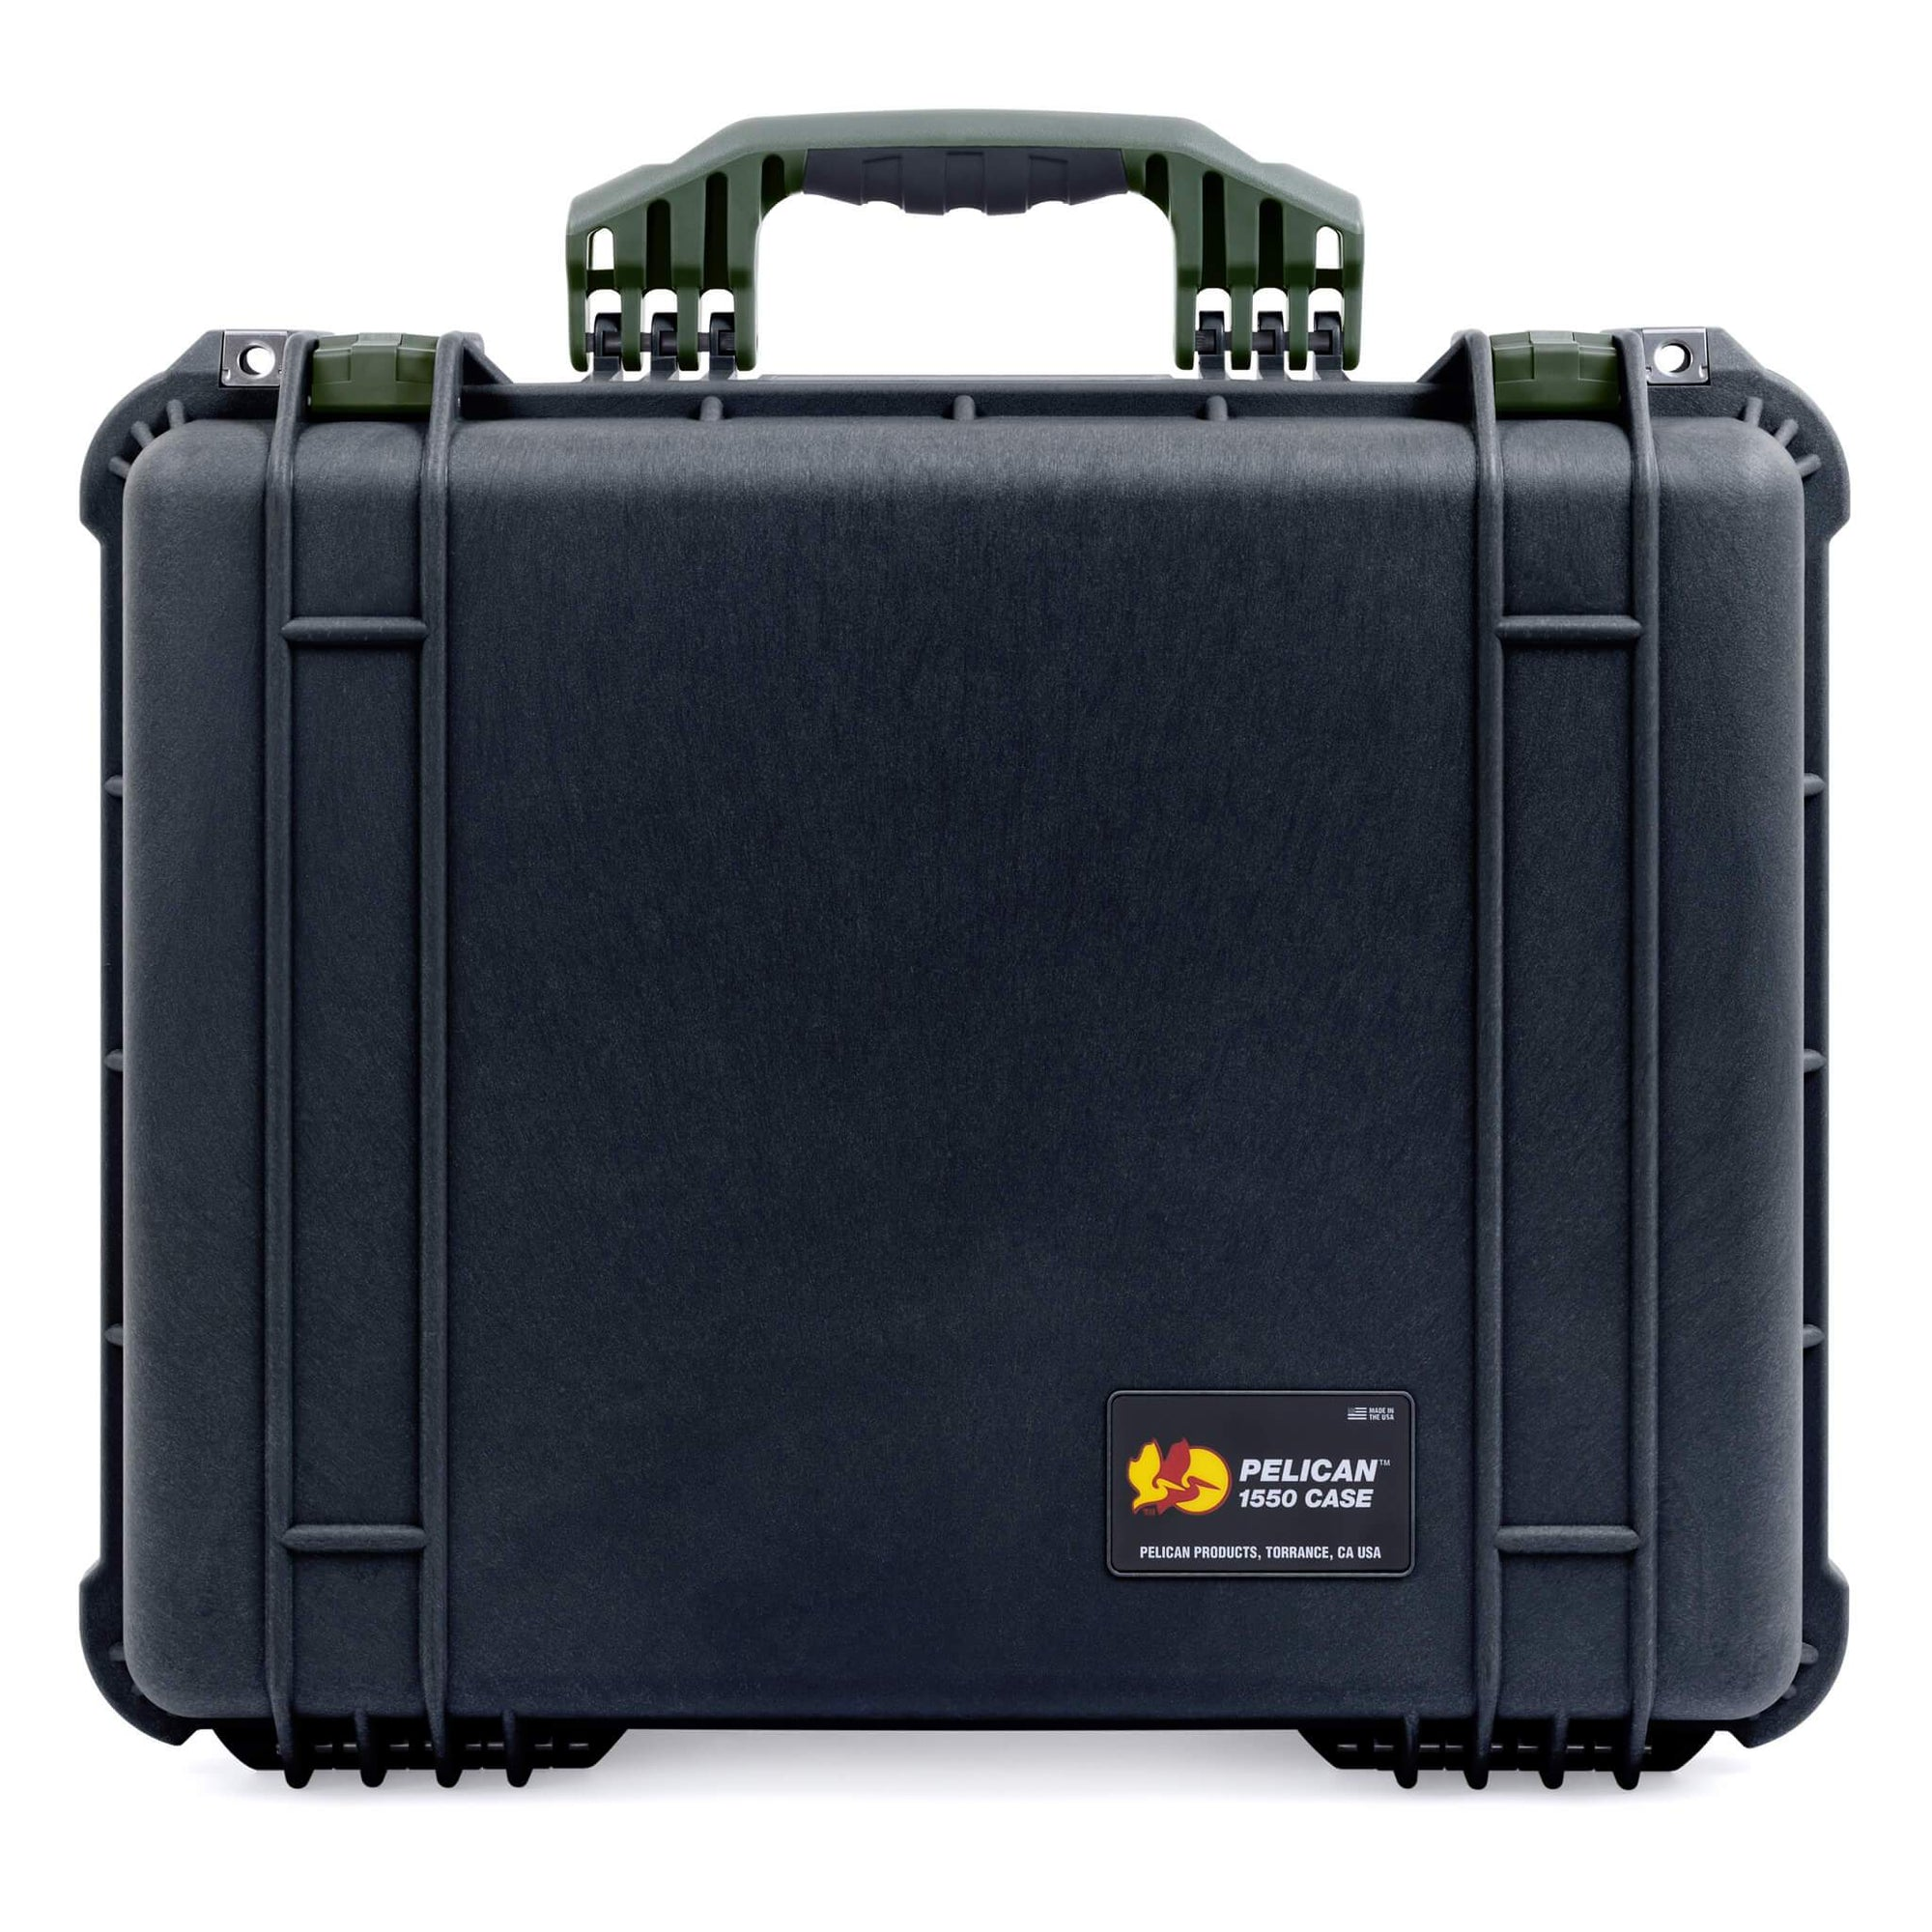 Pelican 1550 Case, Black with OD Green Handle & Latches